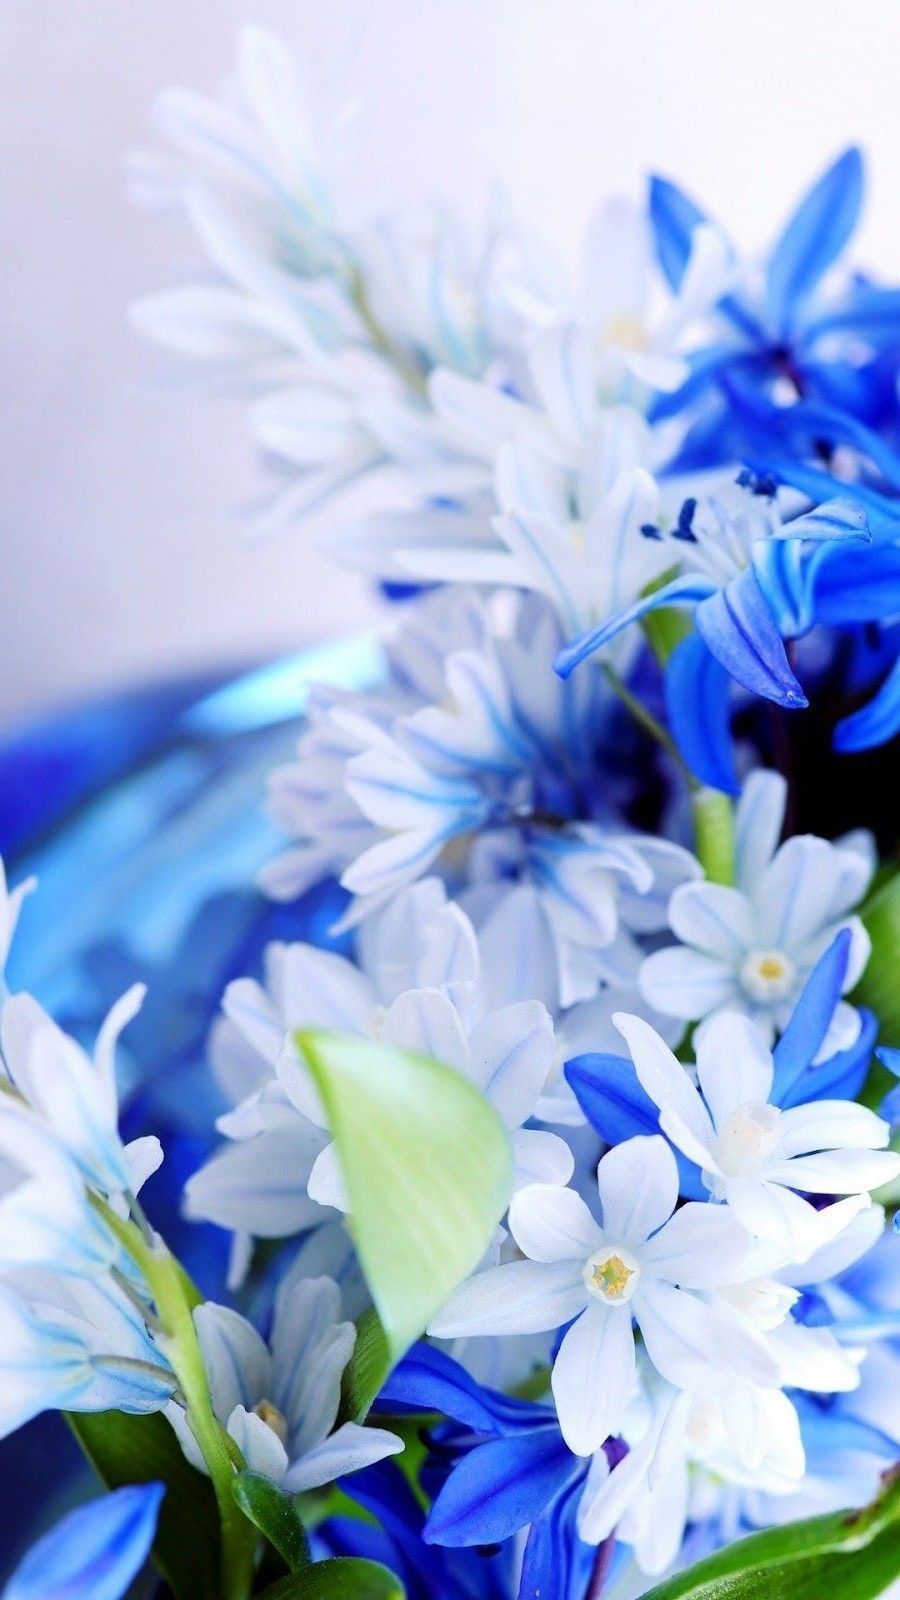 Blue White Flowers Wallpaper Iphone 2018 Iphone Wallpapers